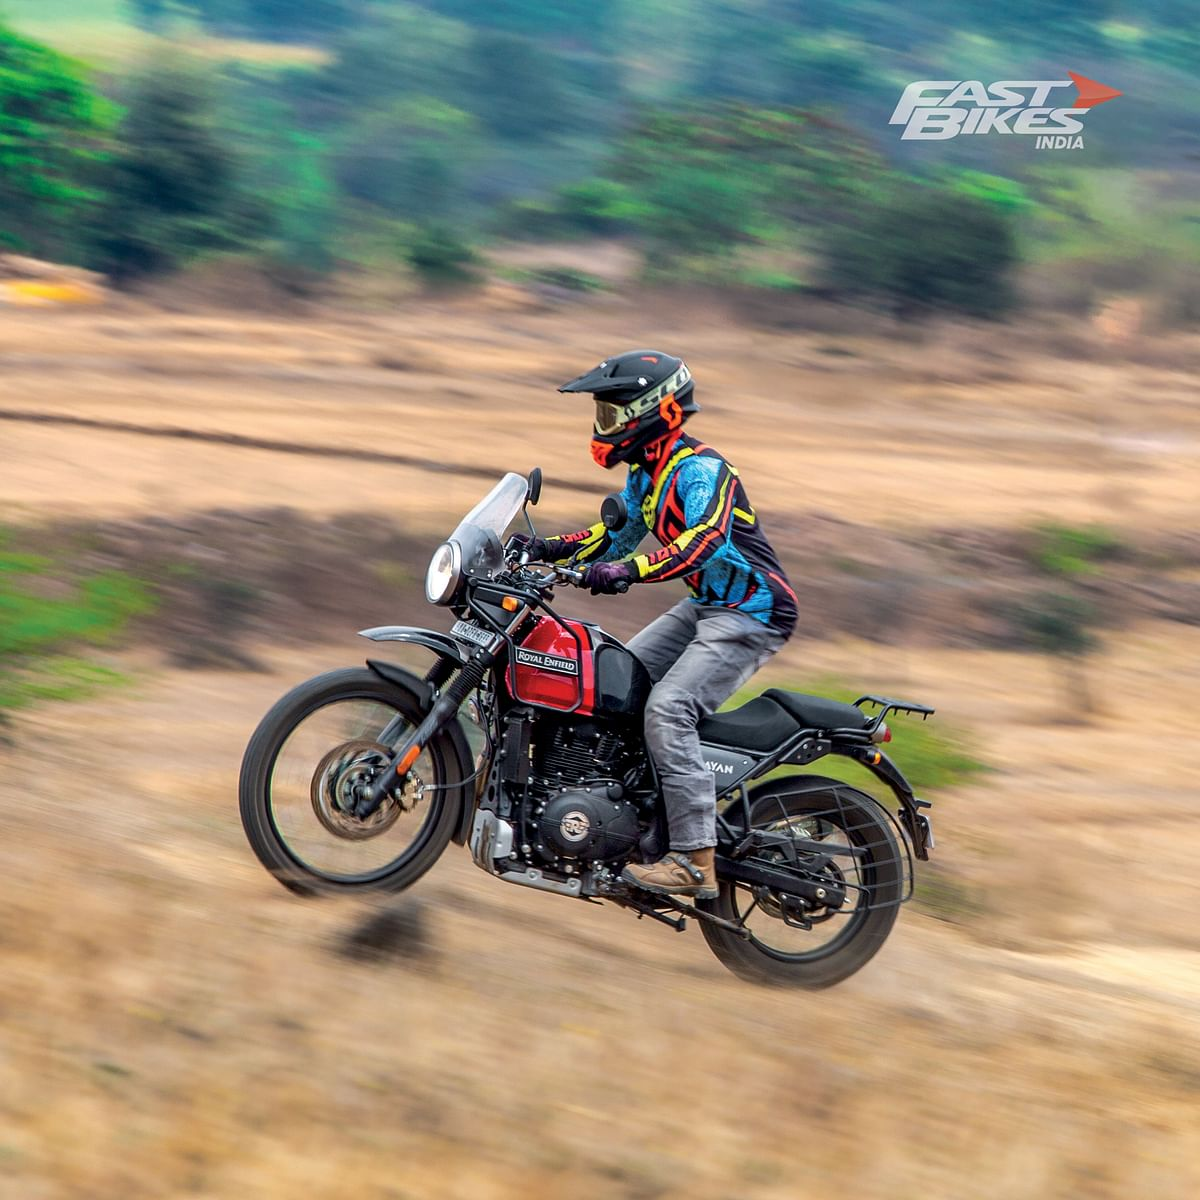 The Royal Enfield Himalayan is one of the more accessible ADVs in the market